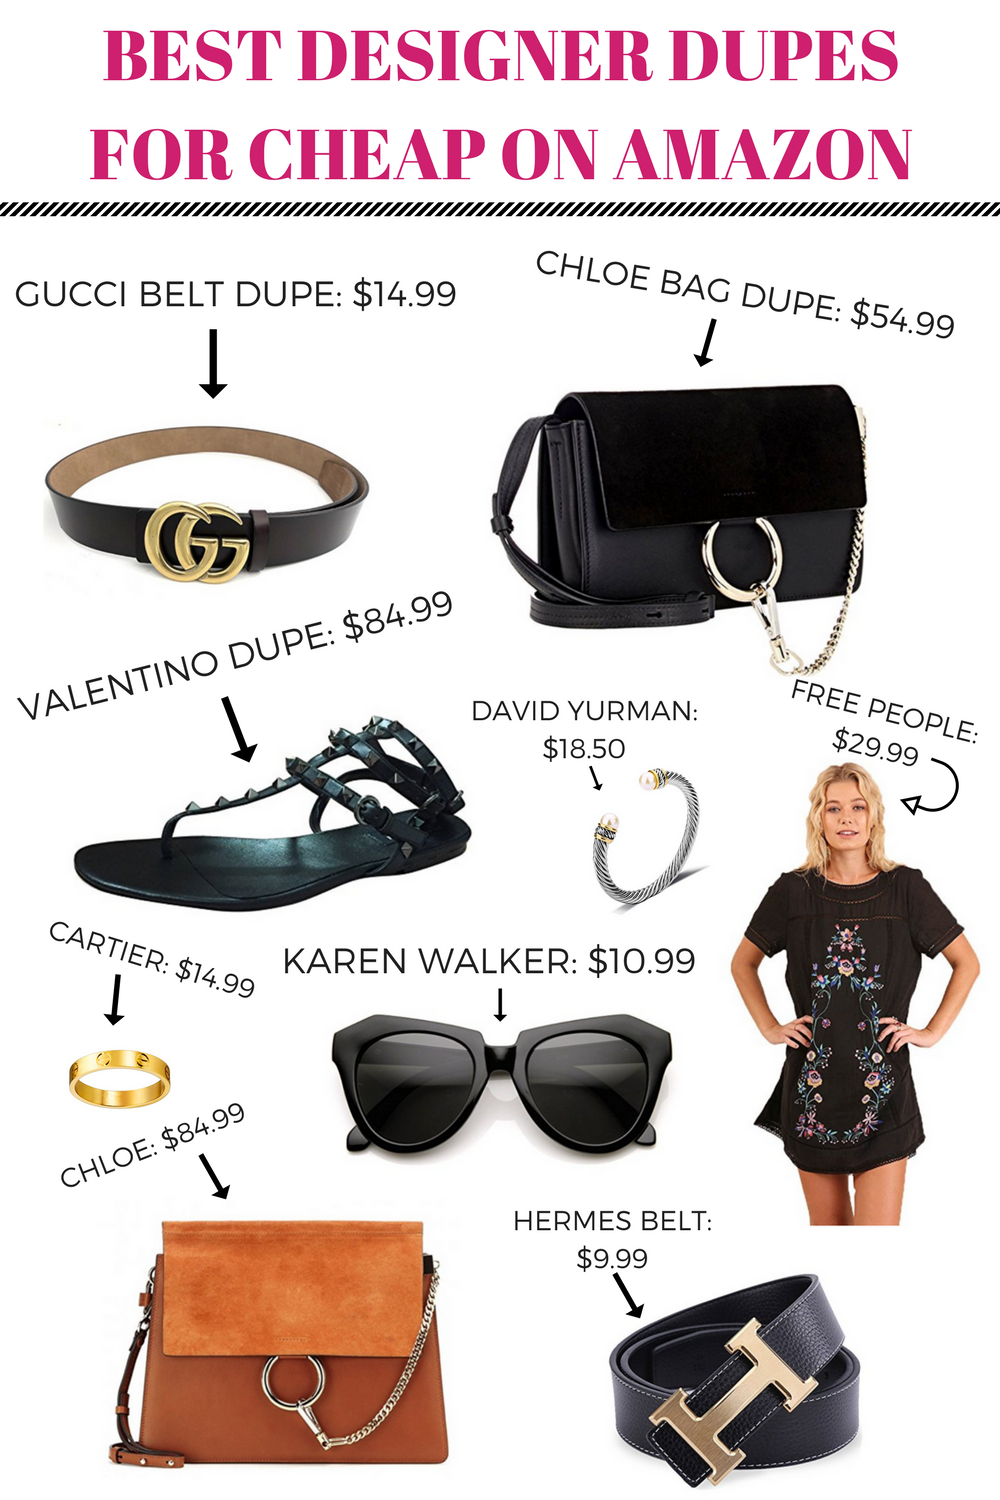 d48f15d7e1 This post has the best roundup of designer dupes for woman available on  Amazon. Everything from Gucci belt dupe to Cartier ring dupe!